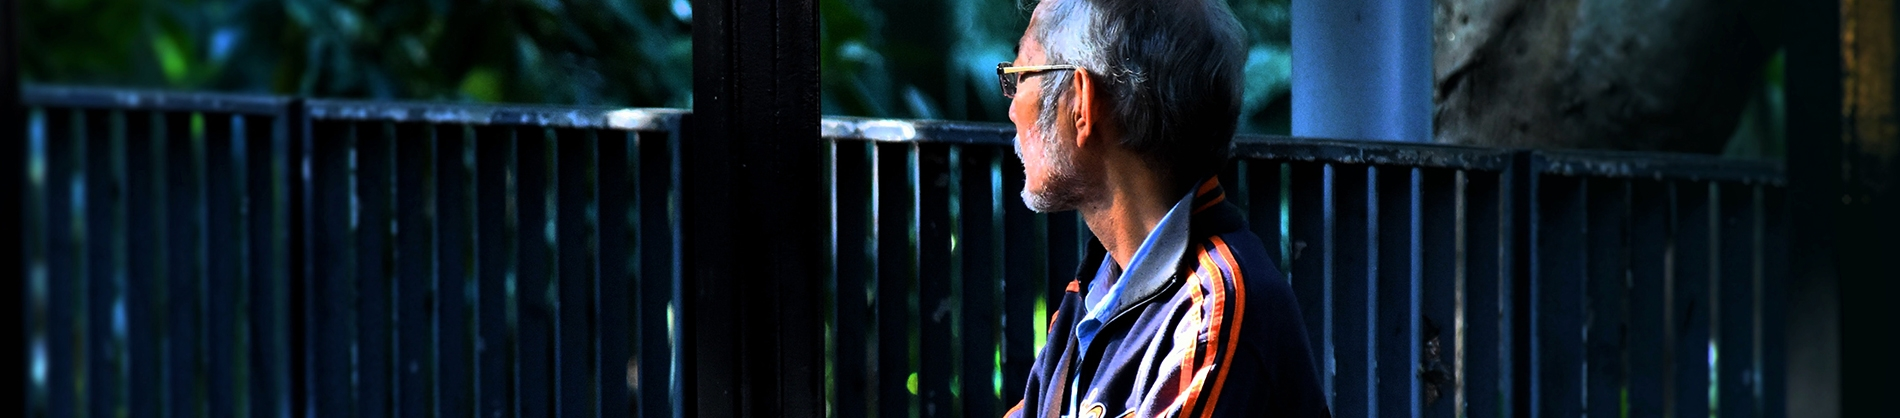 A man sat by some railings looking off into the distance